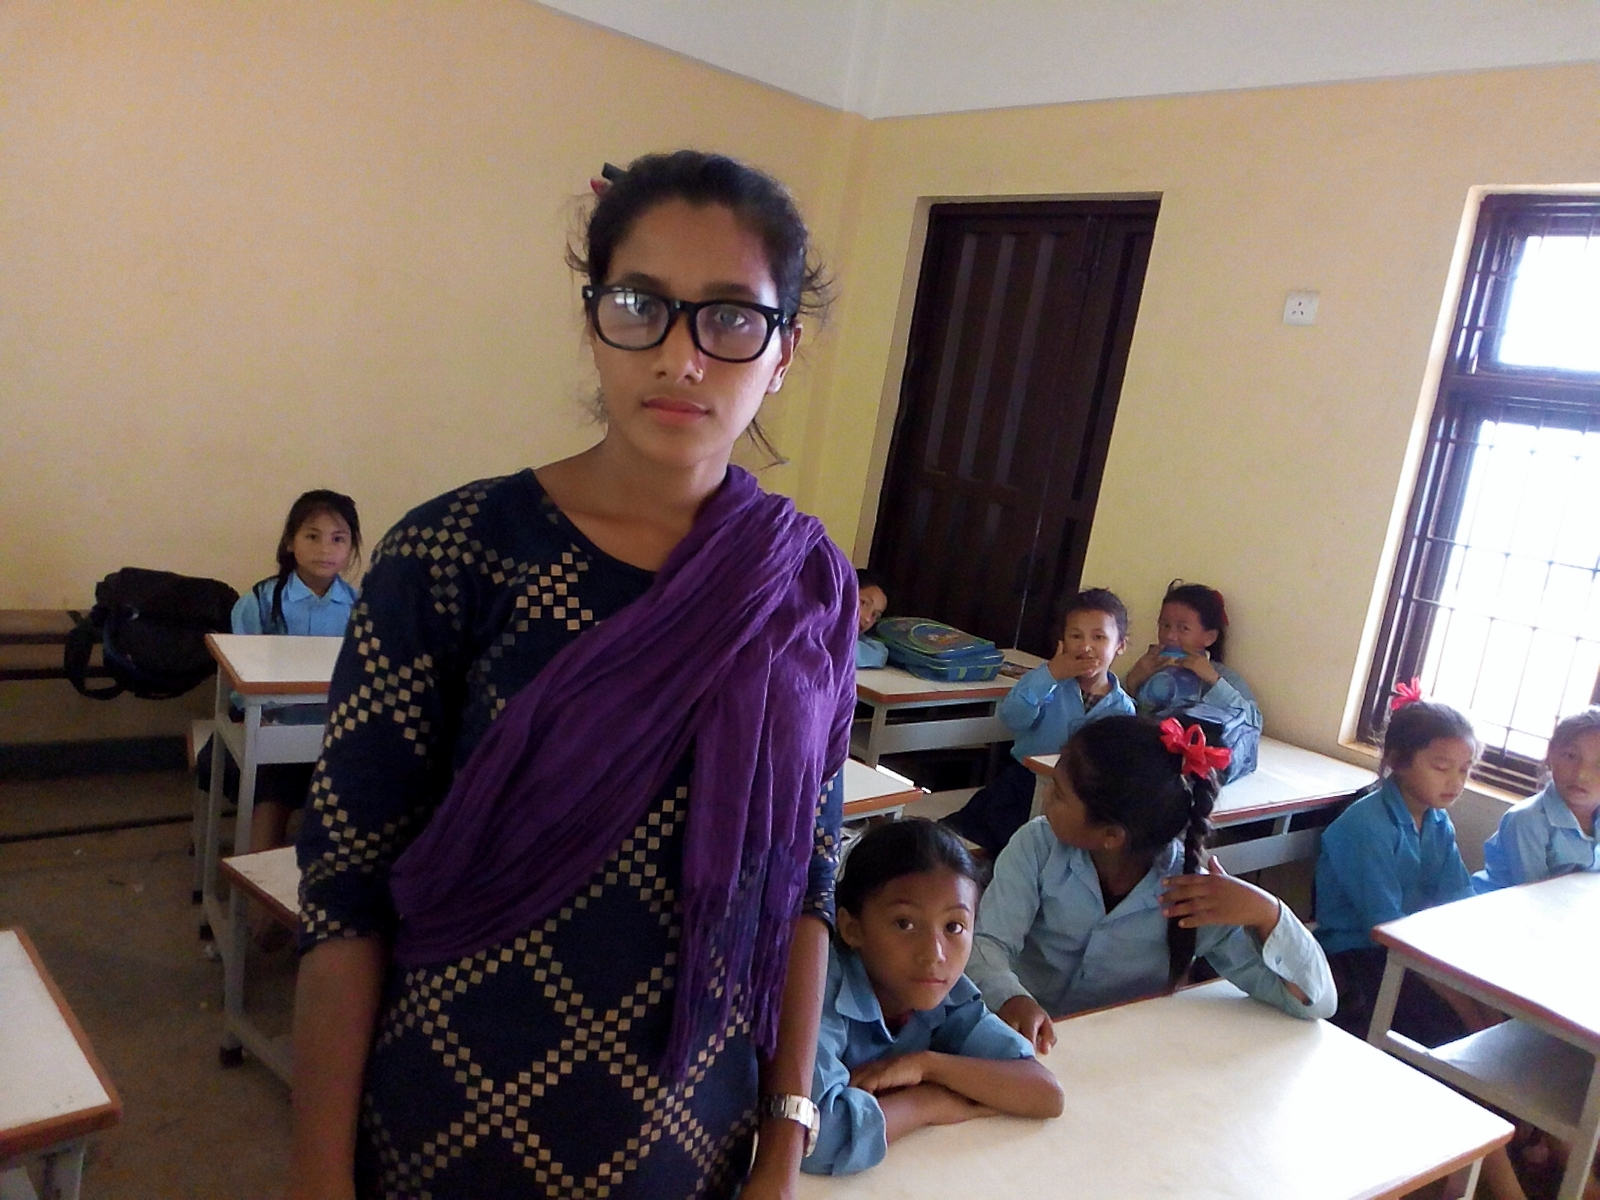 The new teacher Kalpana